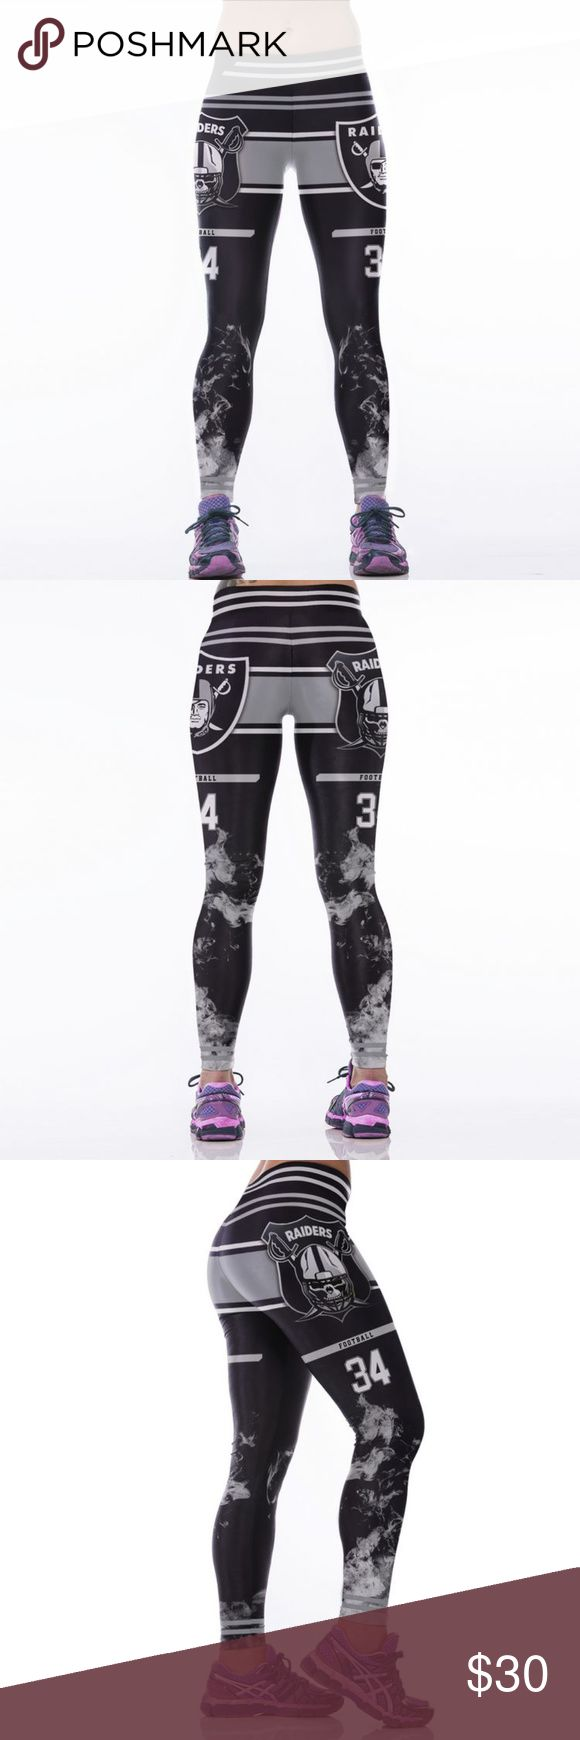 WEEKEND SALE Oakland Raiders NFL Leggings Root for your favorite team in these high quality NFL leggings! Perfect wardrobe addition while watching Sunday football games. The vivid colors and designs are sure to turn heads! Get a pair now while they last to show your team support every week as they inch their way to the glorious Super Bowl Condition: Brand New in Packaging Material: Spandex / Polyester Measurements:  (Length / Waist / Hip) S/M: 36 / 27.5-37 / 33-41.5 L/XL: 36.5 / 30–39.5…